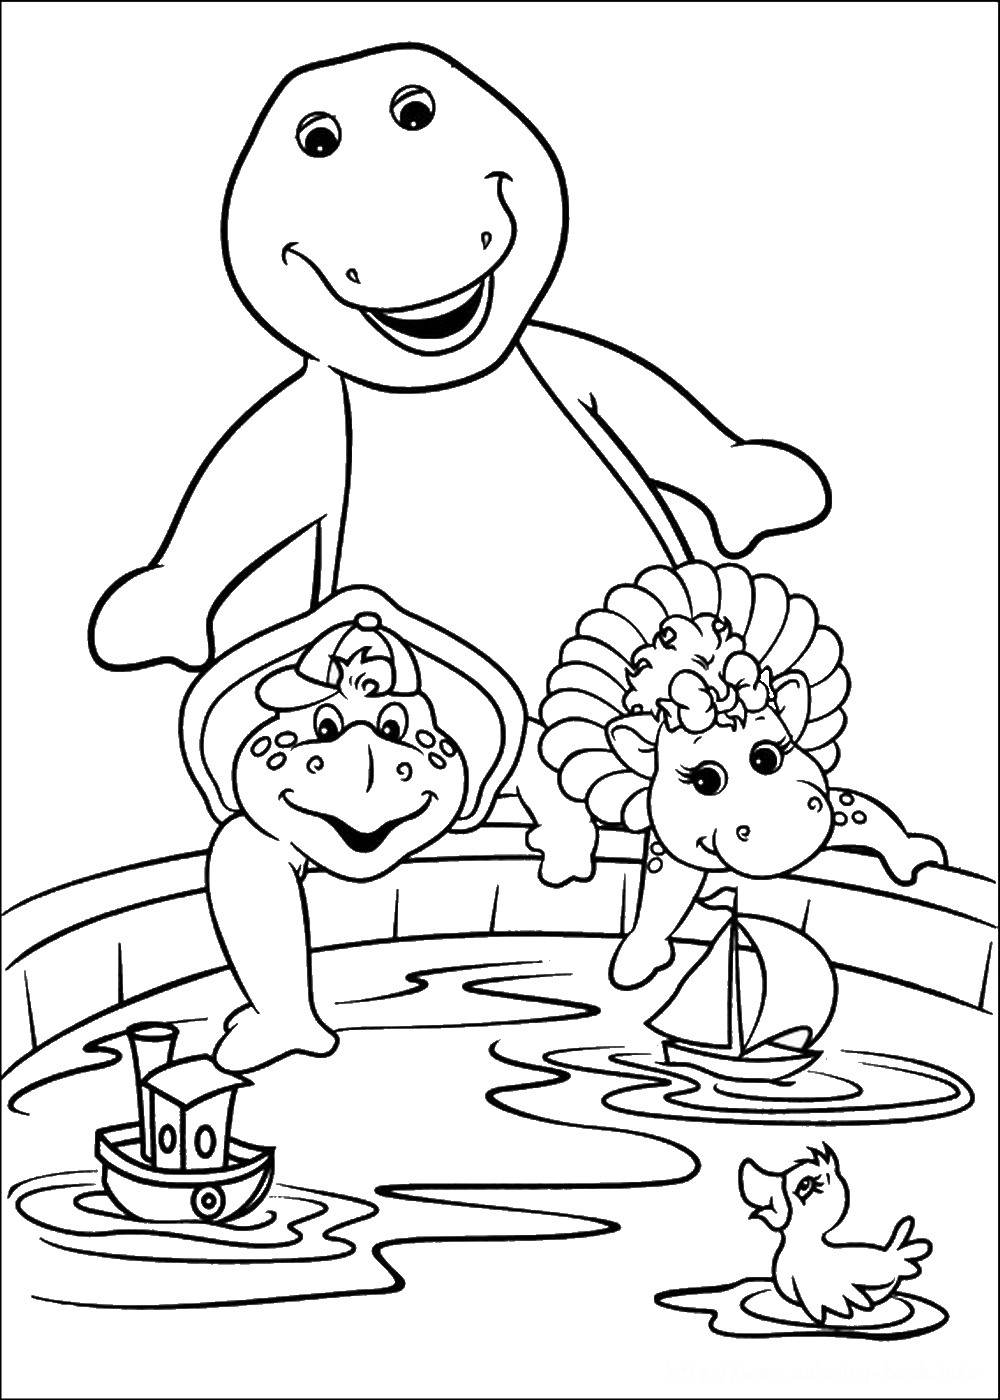 print out coloring pages barney coloring pages pages print out coloring